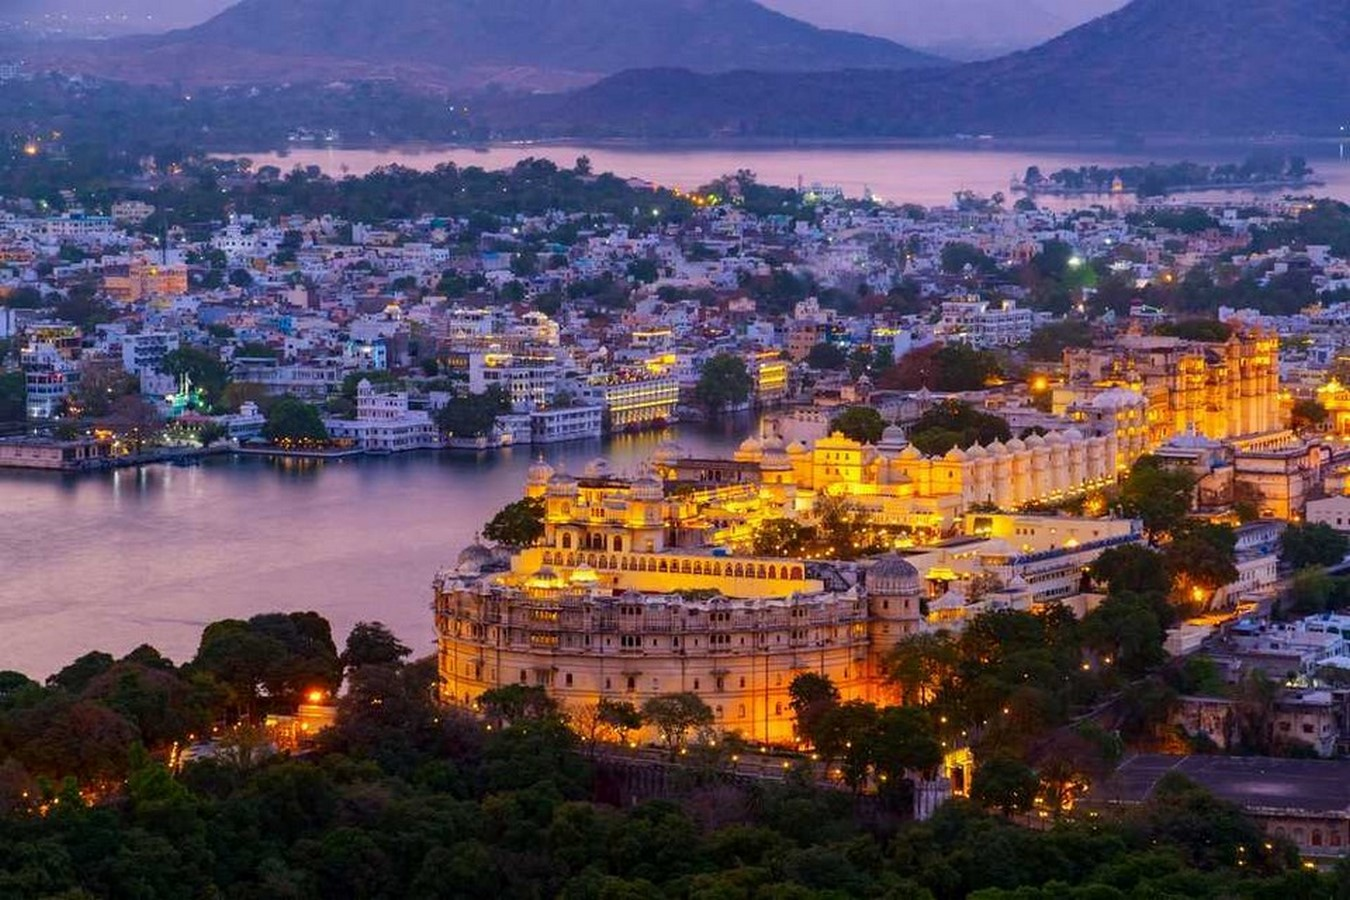 Architecture of Indian Cities Udaipur - City of lakes - Sheet1